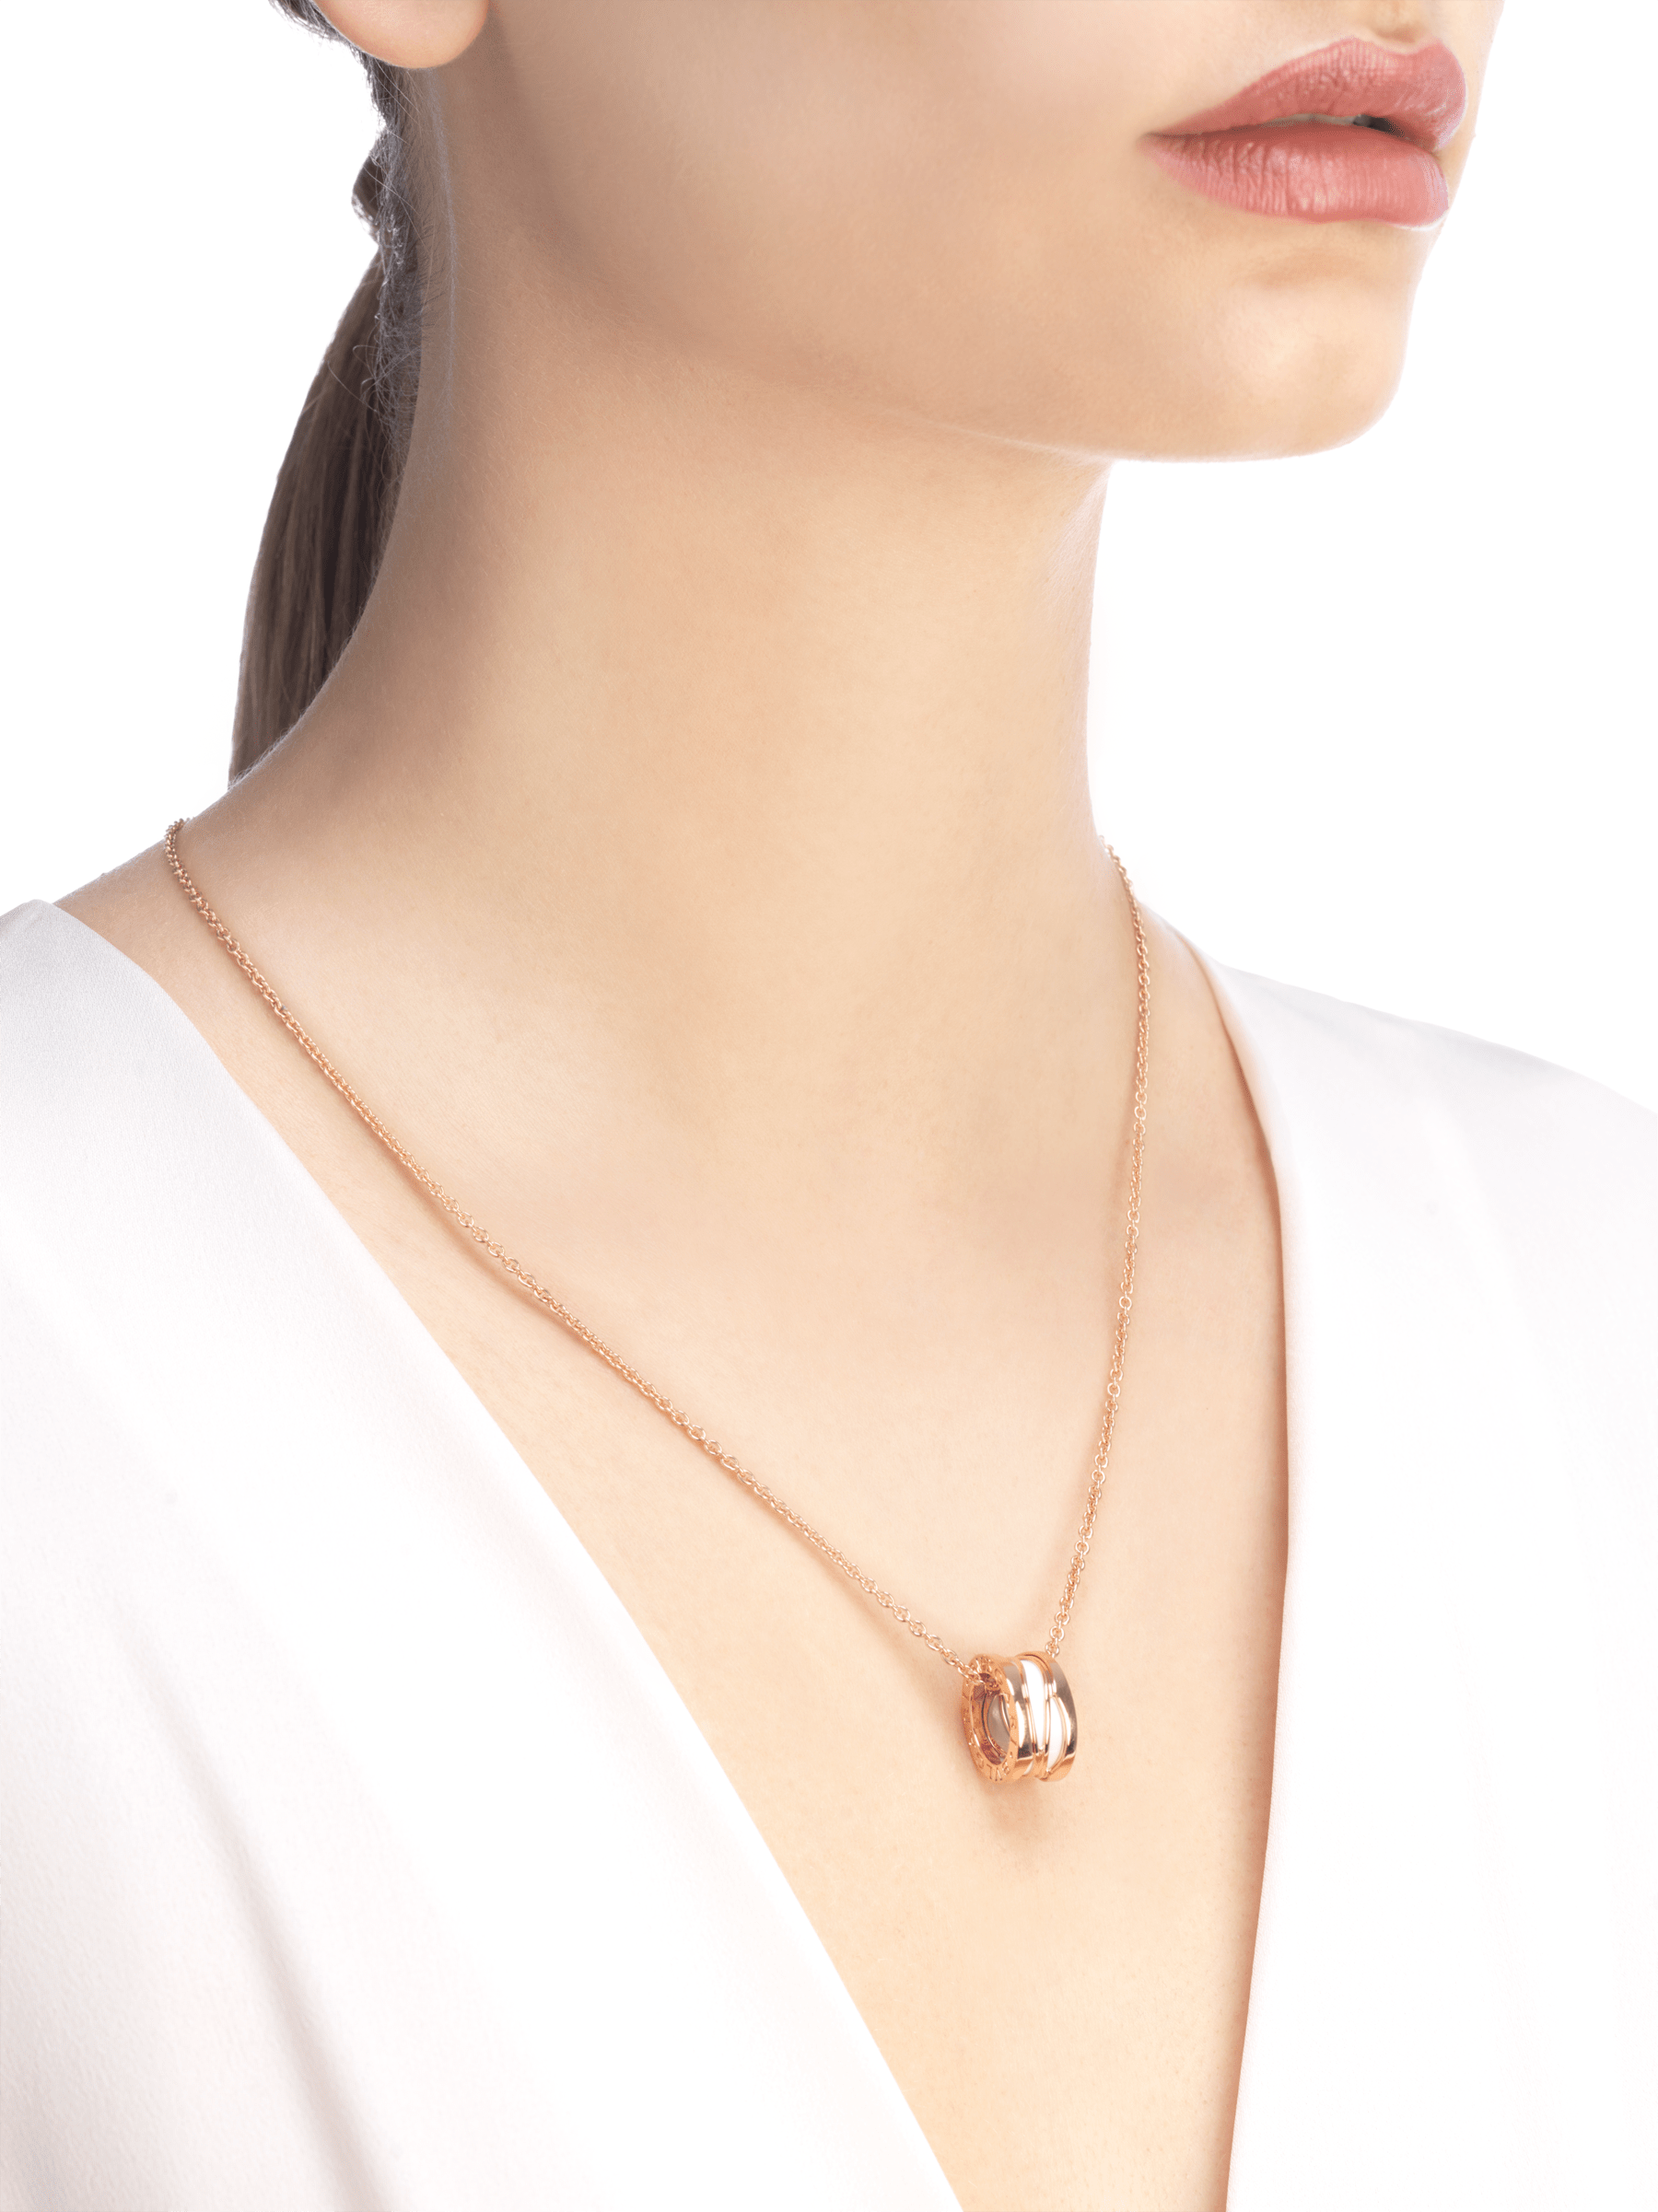 B.zero1 Design Legend necklace with 18 kt rose gold chain and pendant in 18 kt rose gold and white ceramic 356117 image 4